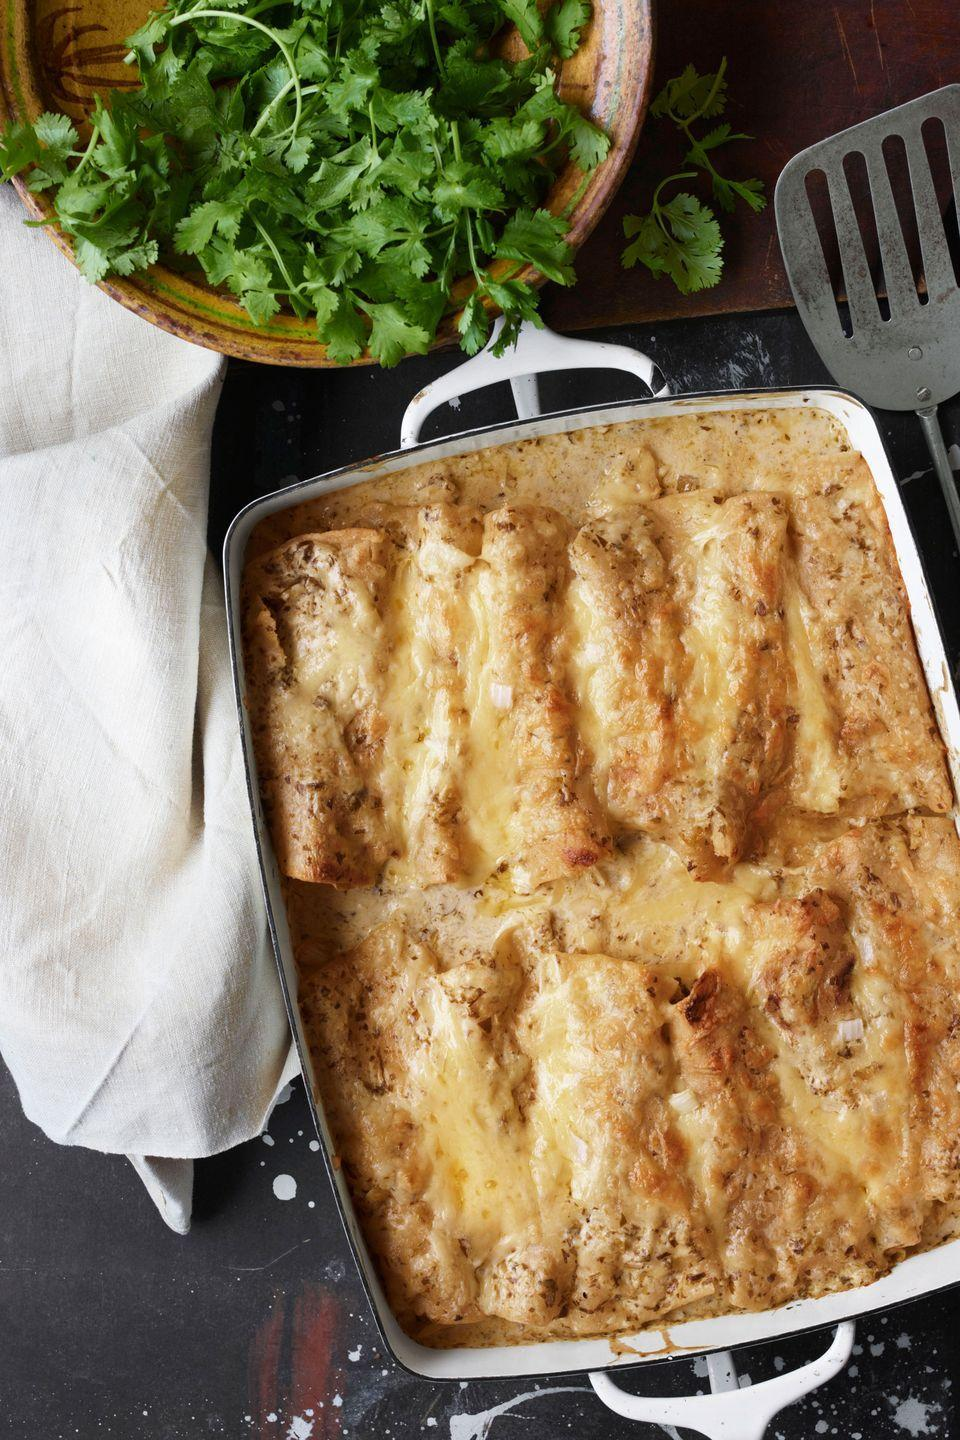 """<p>Take a gander at these cheesy chicken enchiladas. """"To give a kick to my sour cream sauce,"""" the author says, """"I add serrano chiles and tomatillos.""""</p><p><strong><a href=""""https://www.countryliving.com/food-drinks/recipes/a3779/sour-cream-chicken-enchiladas-recipe-clx0312/"""" rel=""""nofollow noopener"""" target=""""_blank"""" data-ylk=""""slk:Get the recipe"""" class=""""link rapid-noclick-resp"""">Get the recipe</a>.</strong></p>"""